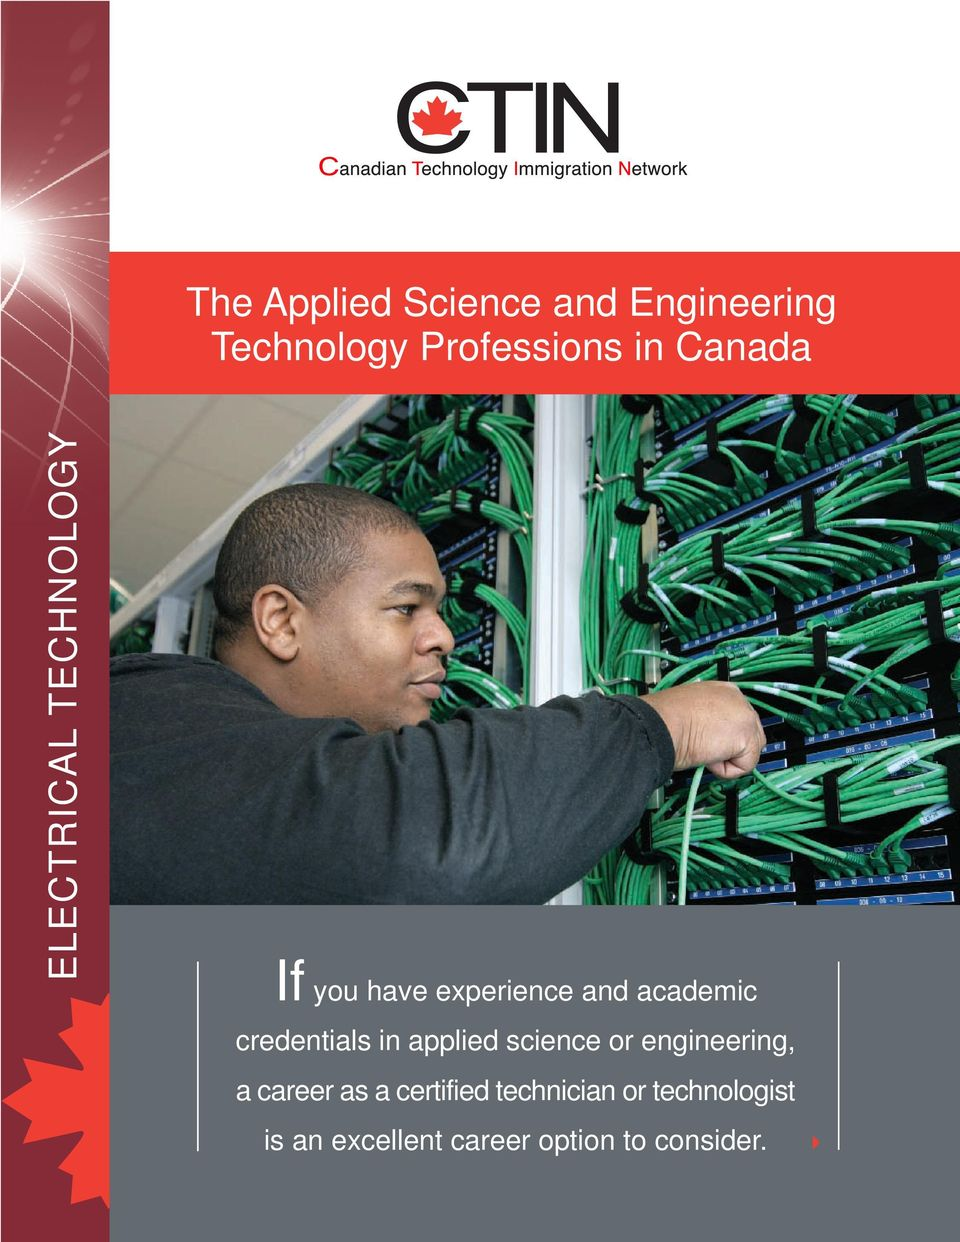 applied science or engineering, a career as a certified